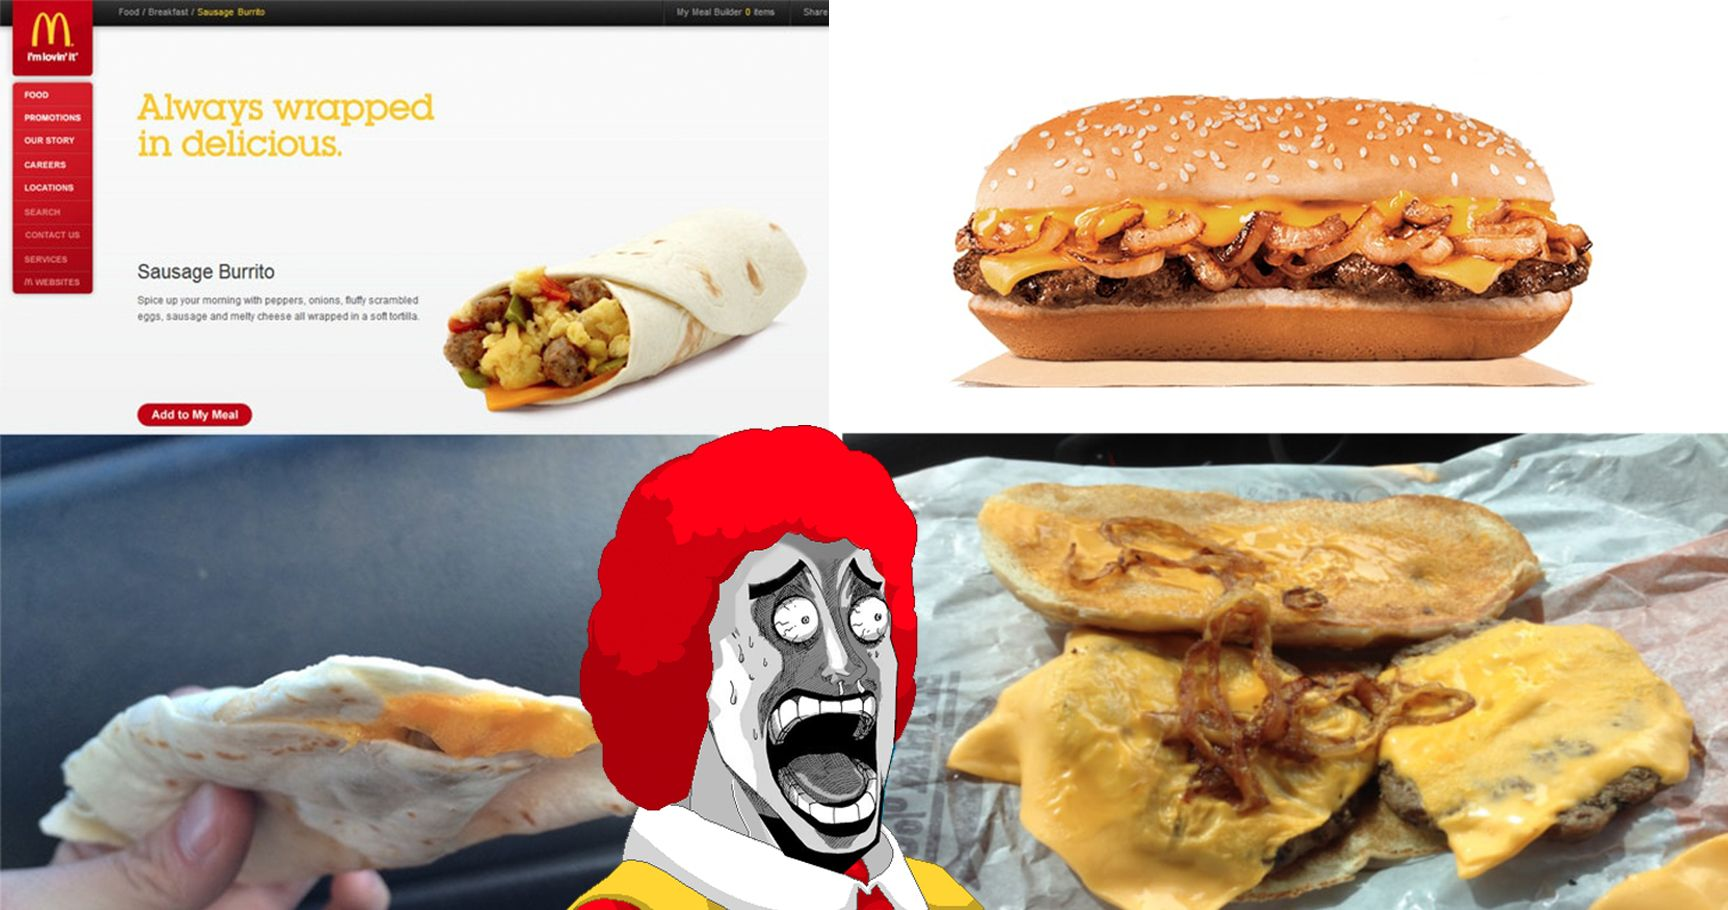 15 Shocking Photos Of Fast Food Advertisements Versus Reality